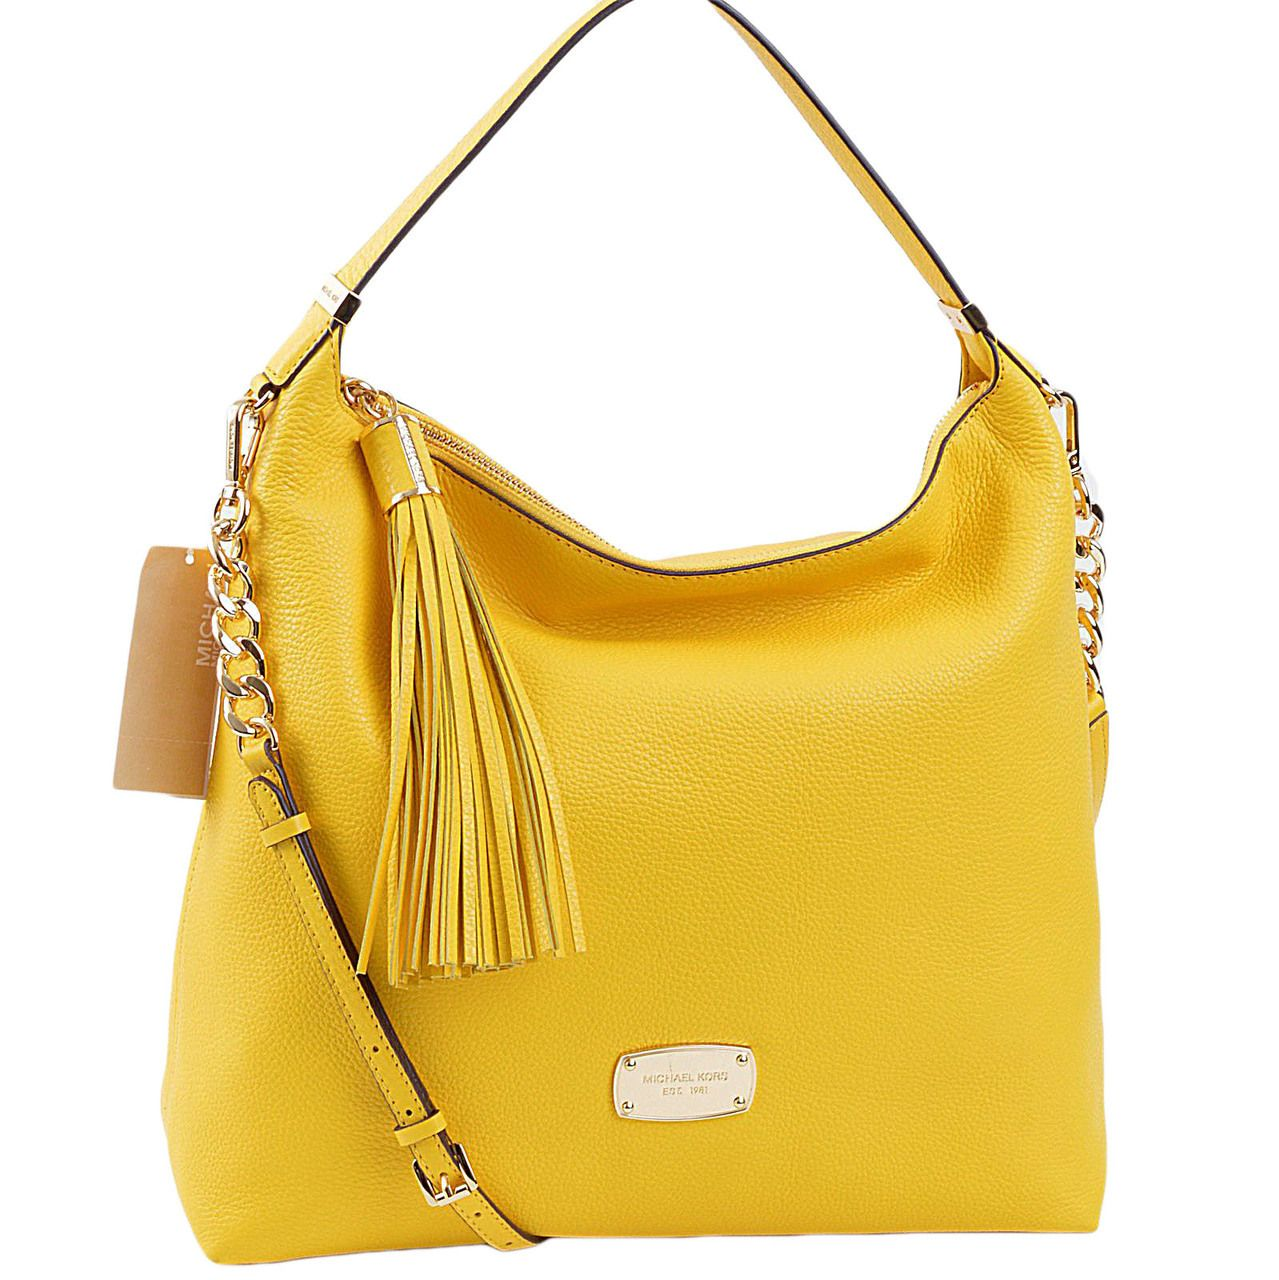 f4b2f3dc89b8 Michael Kors Bedford Large Top Zip Shoulder Bag in Citrus Yellow Pebbled  Leather